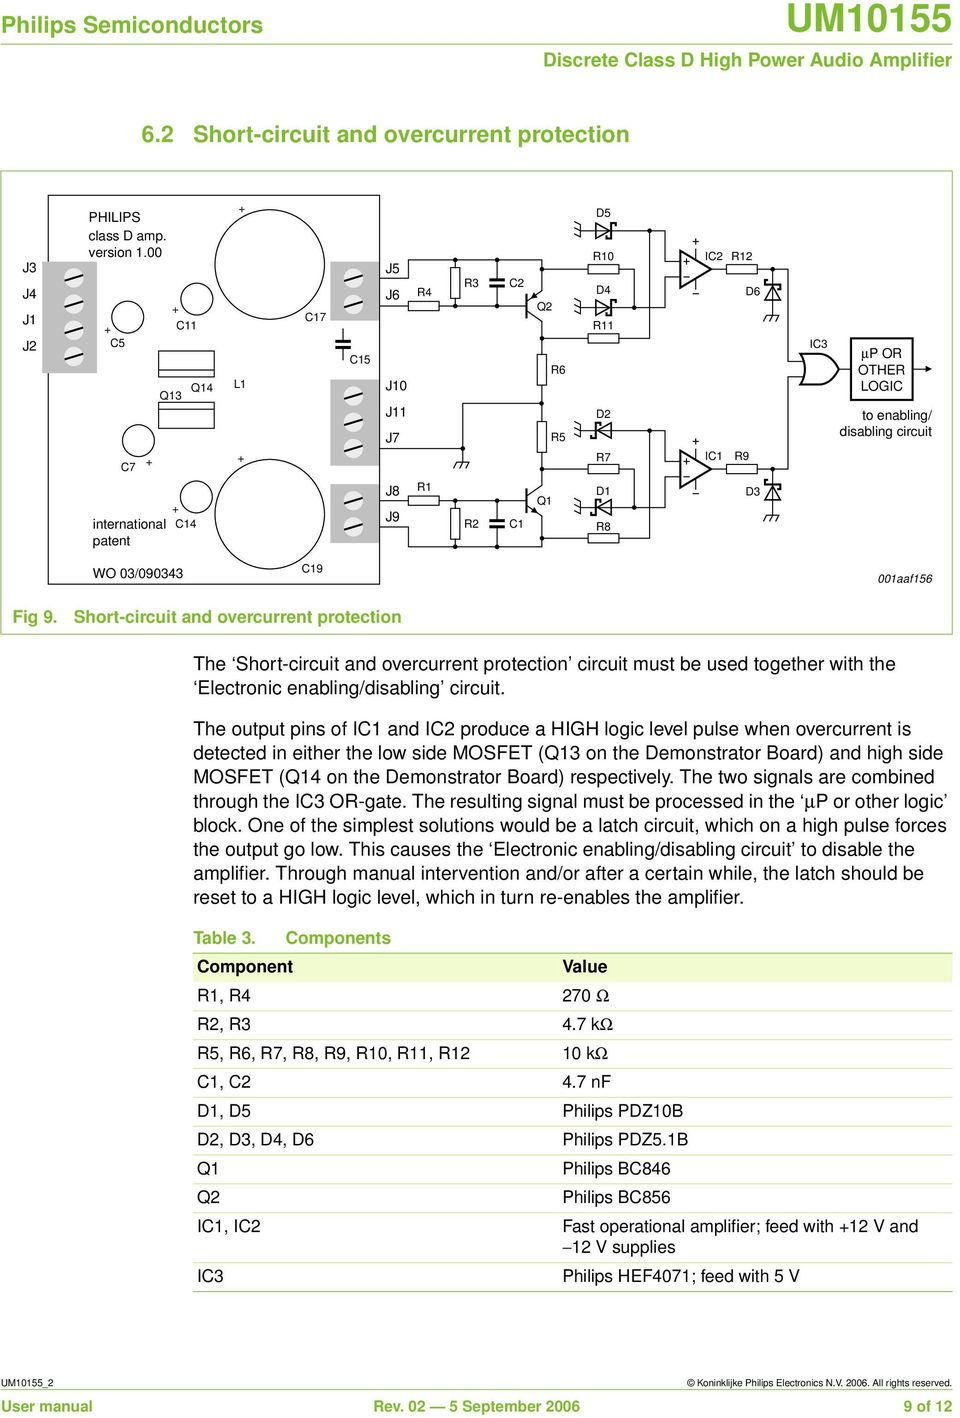 Um Discrete Class D High Power Audio Amplifier Document Information 200 Watt Amp Mosfet Schematic Using Philips Transistors Q1 D1 R8 D3 Wo 03 090343 C19 001aaf156 Fig 9